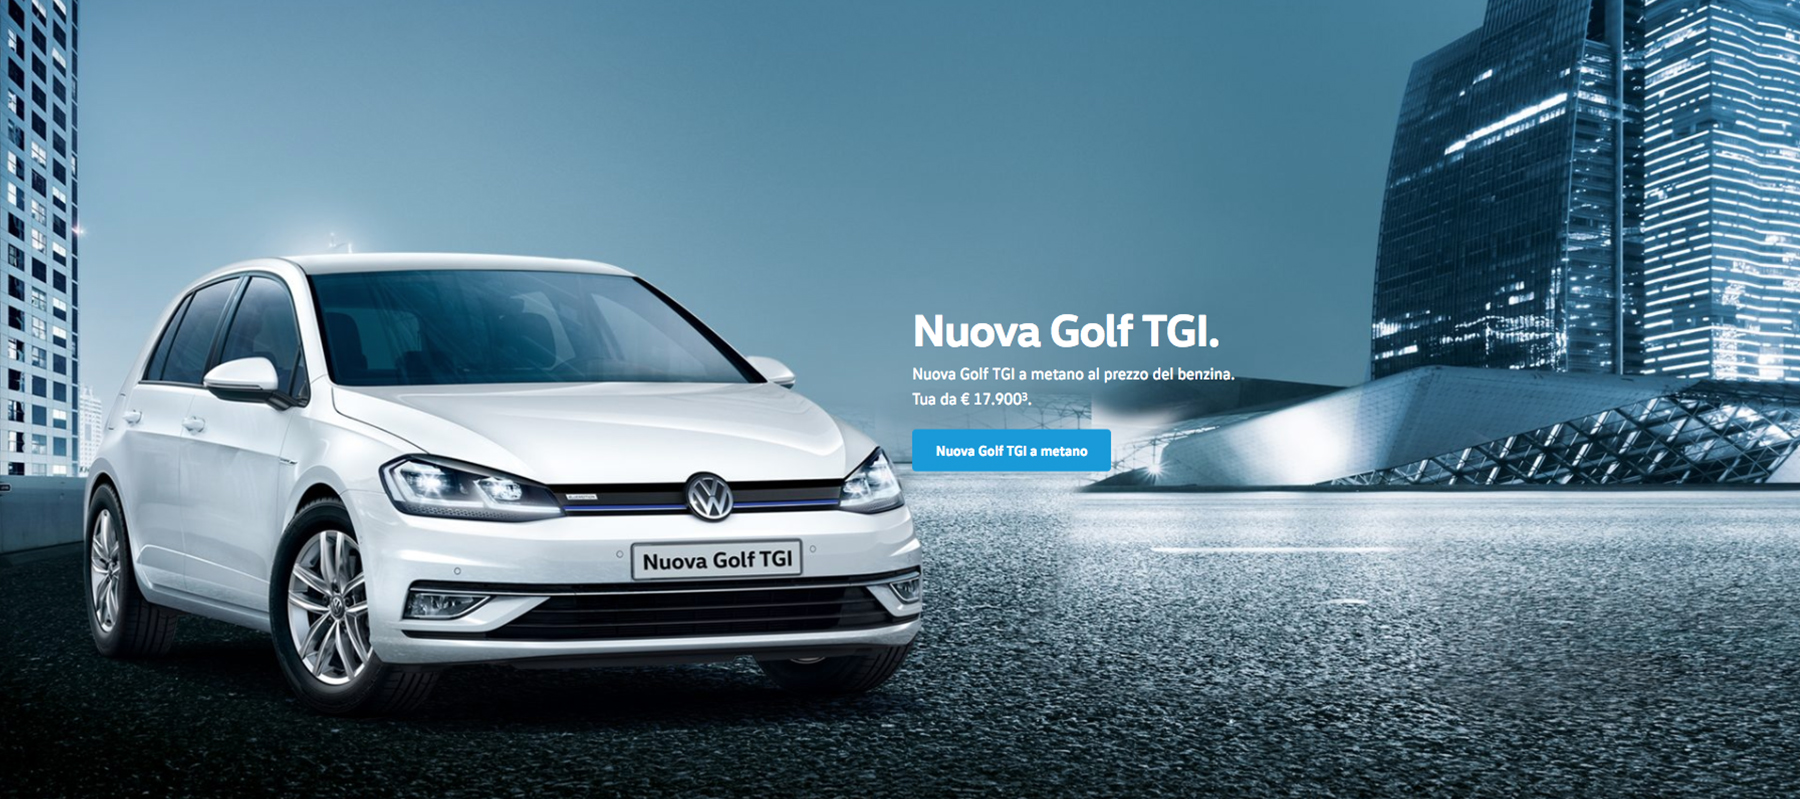 Nuova-Golf-TGI-metano